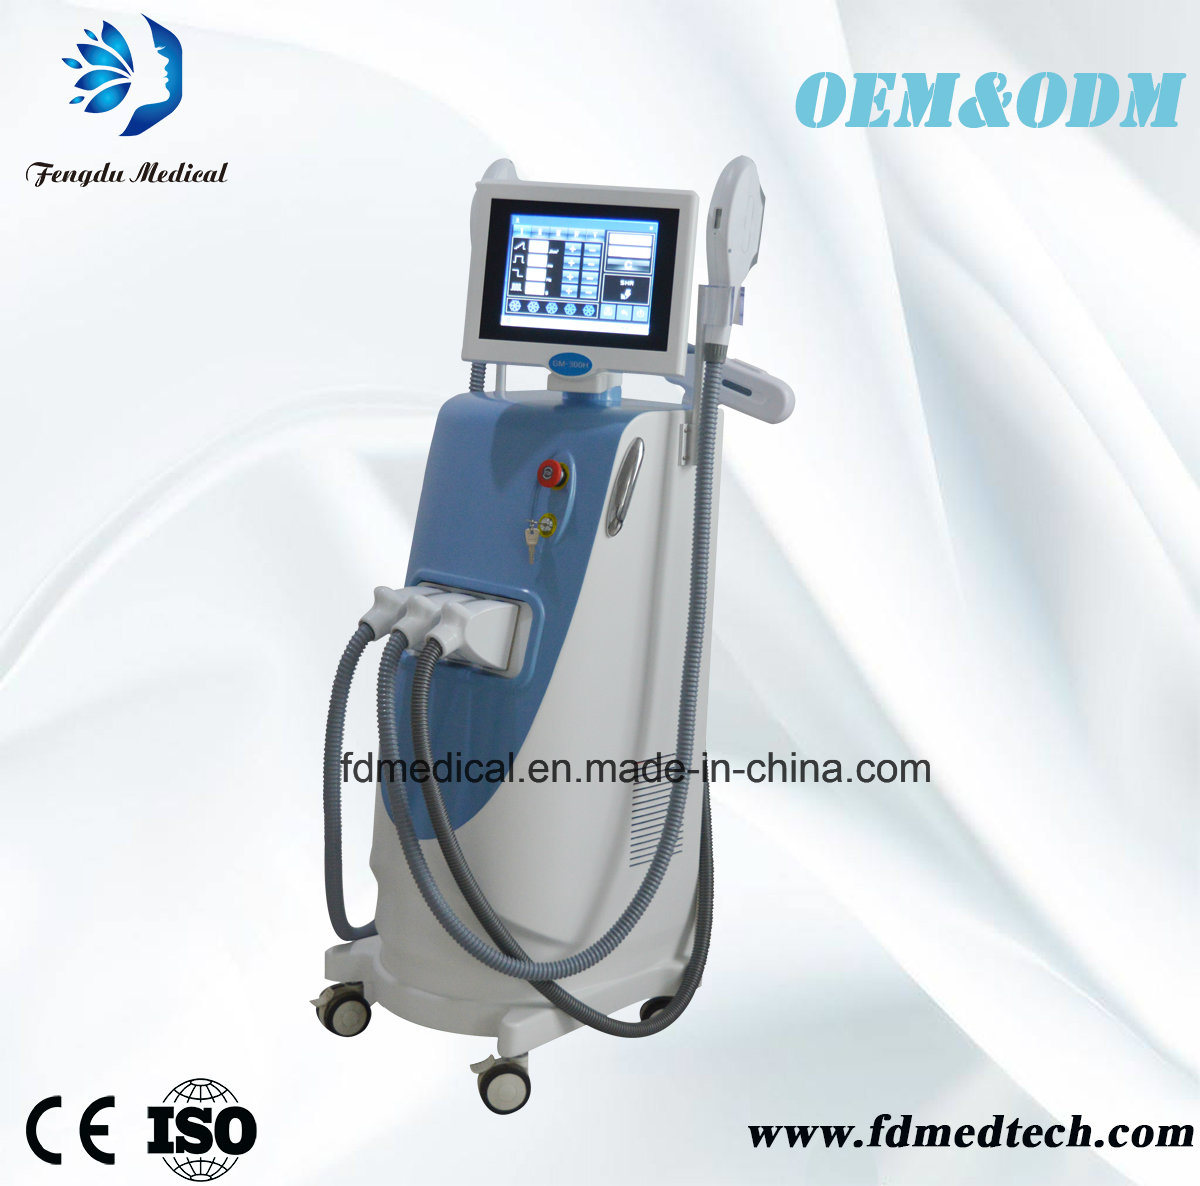 China Multifunction IPL Elight Laser Machine with Powerful Cooling System with Medical Ce Approval